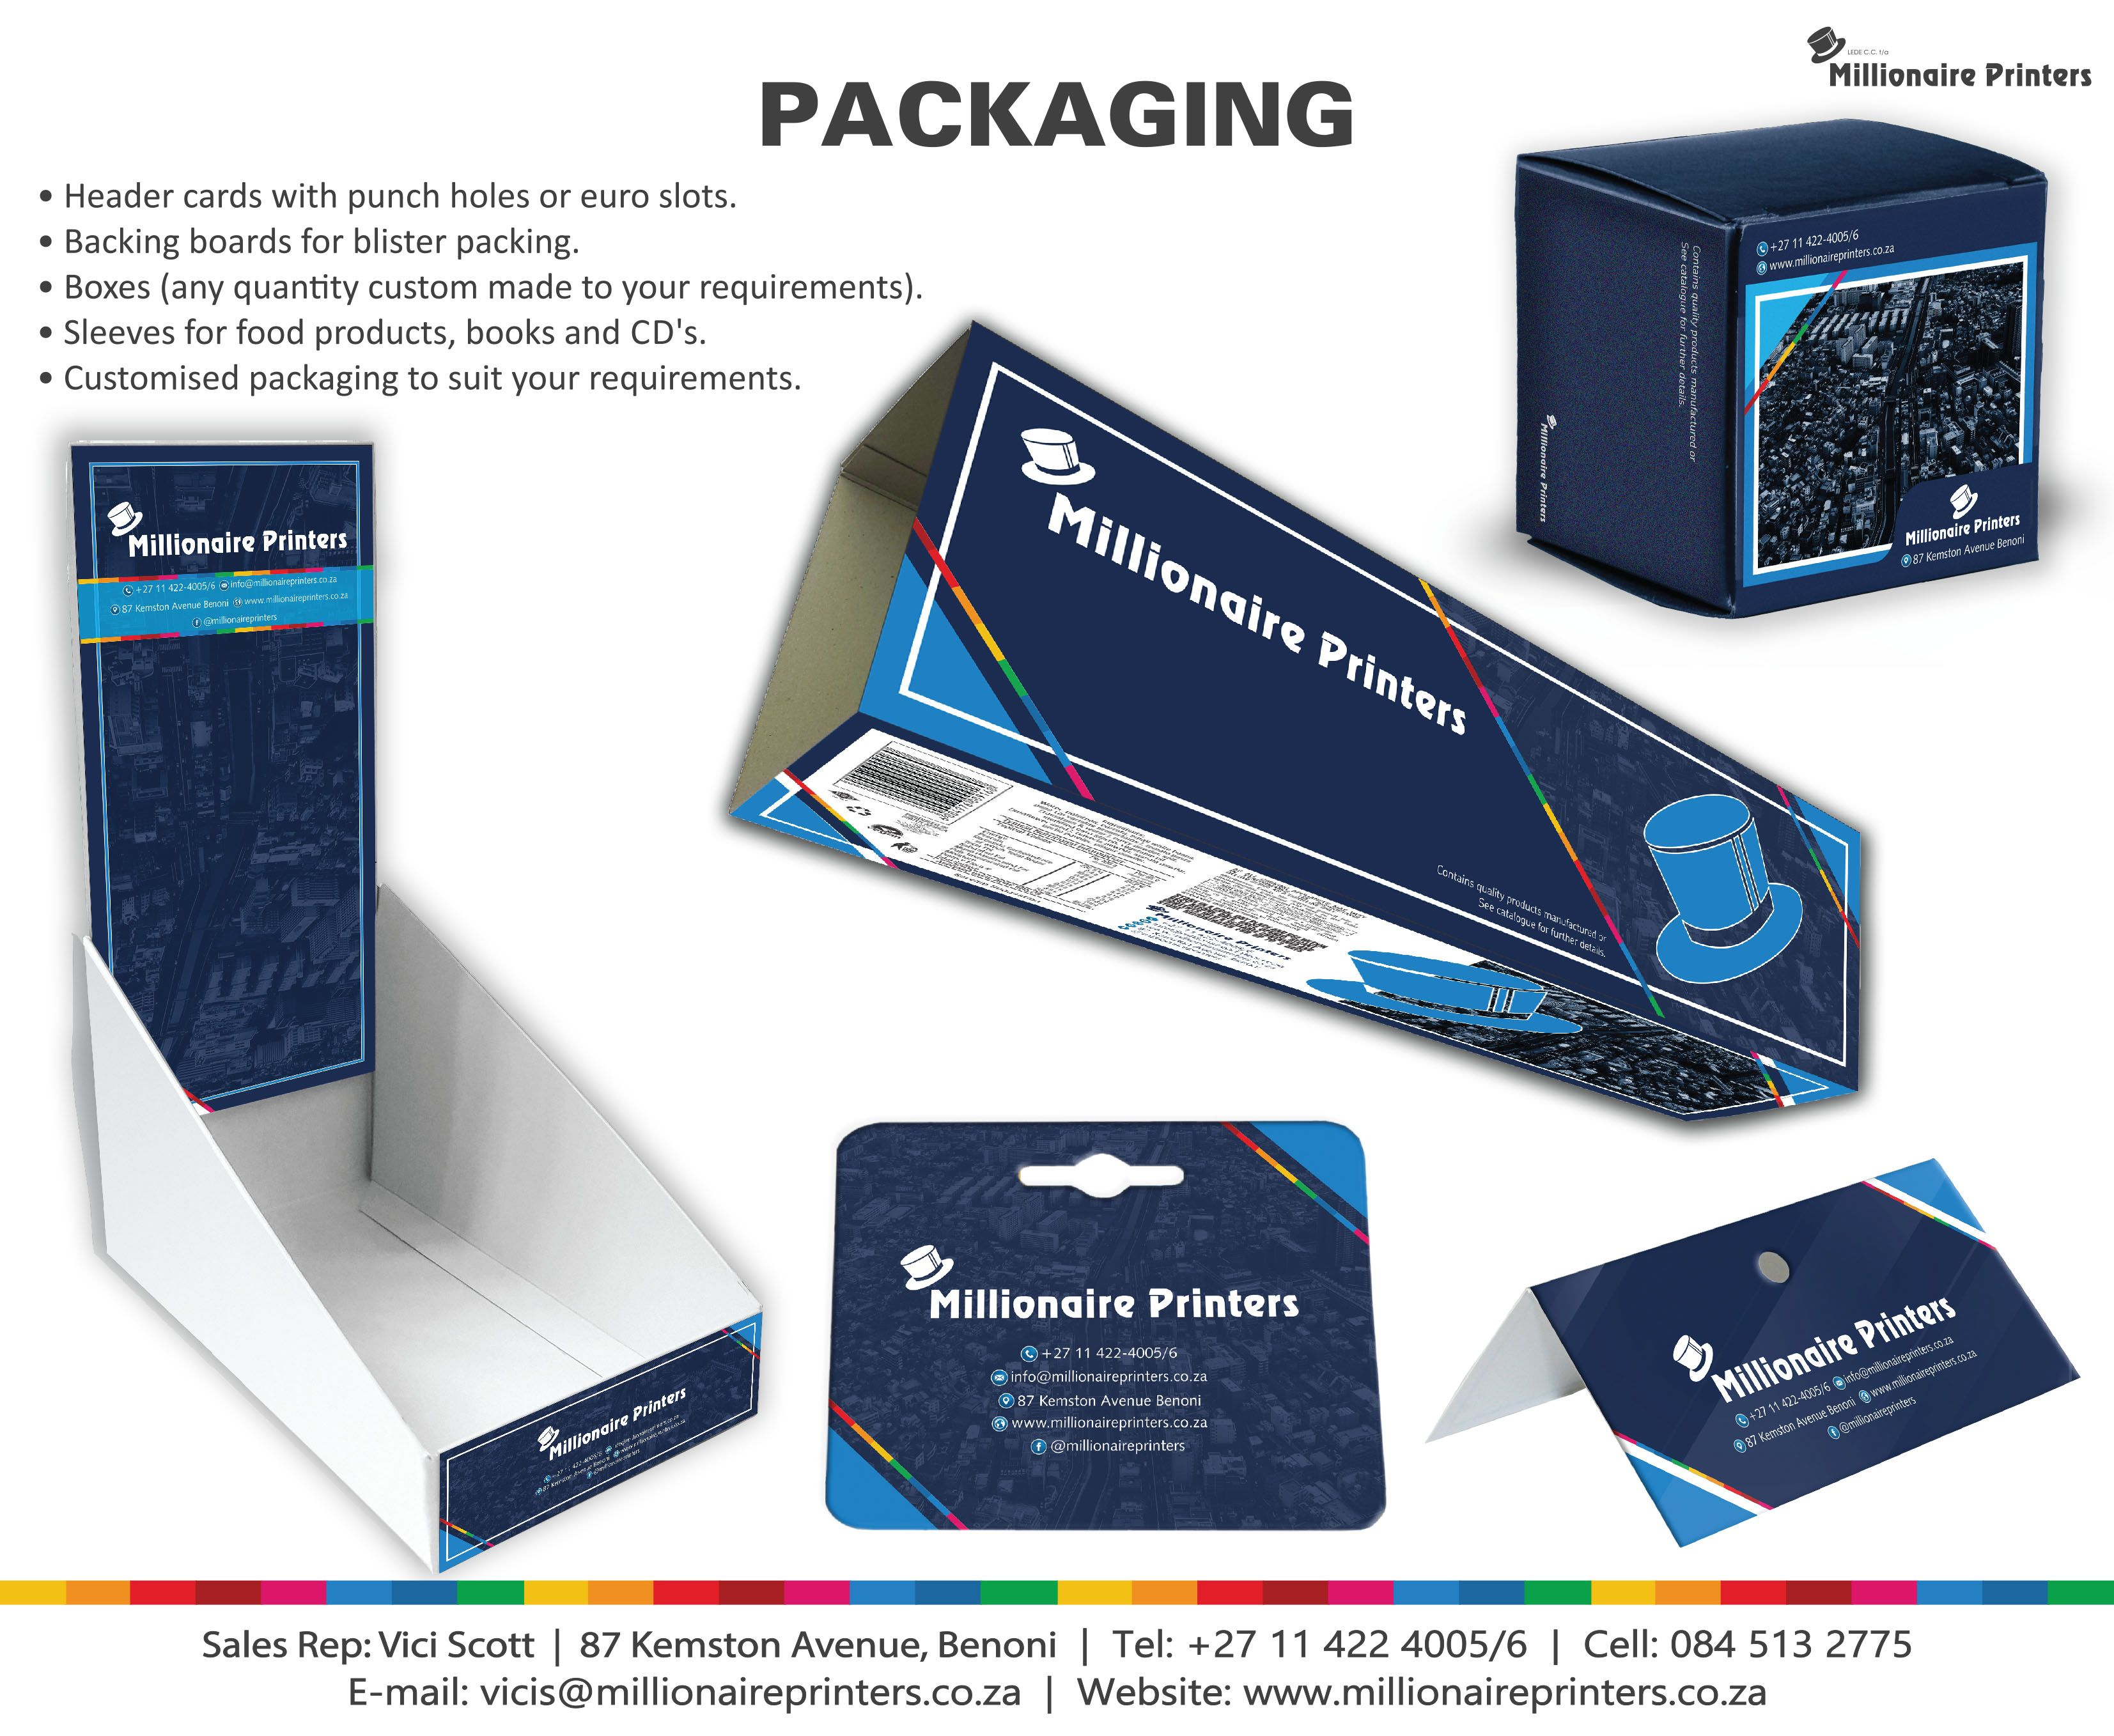 Various Packaging Options Available Header Cards With Punched Holes Or Euro Slots Backing Boards For Blister Packagi Blister Packaging Farm Marketing Cards